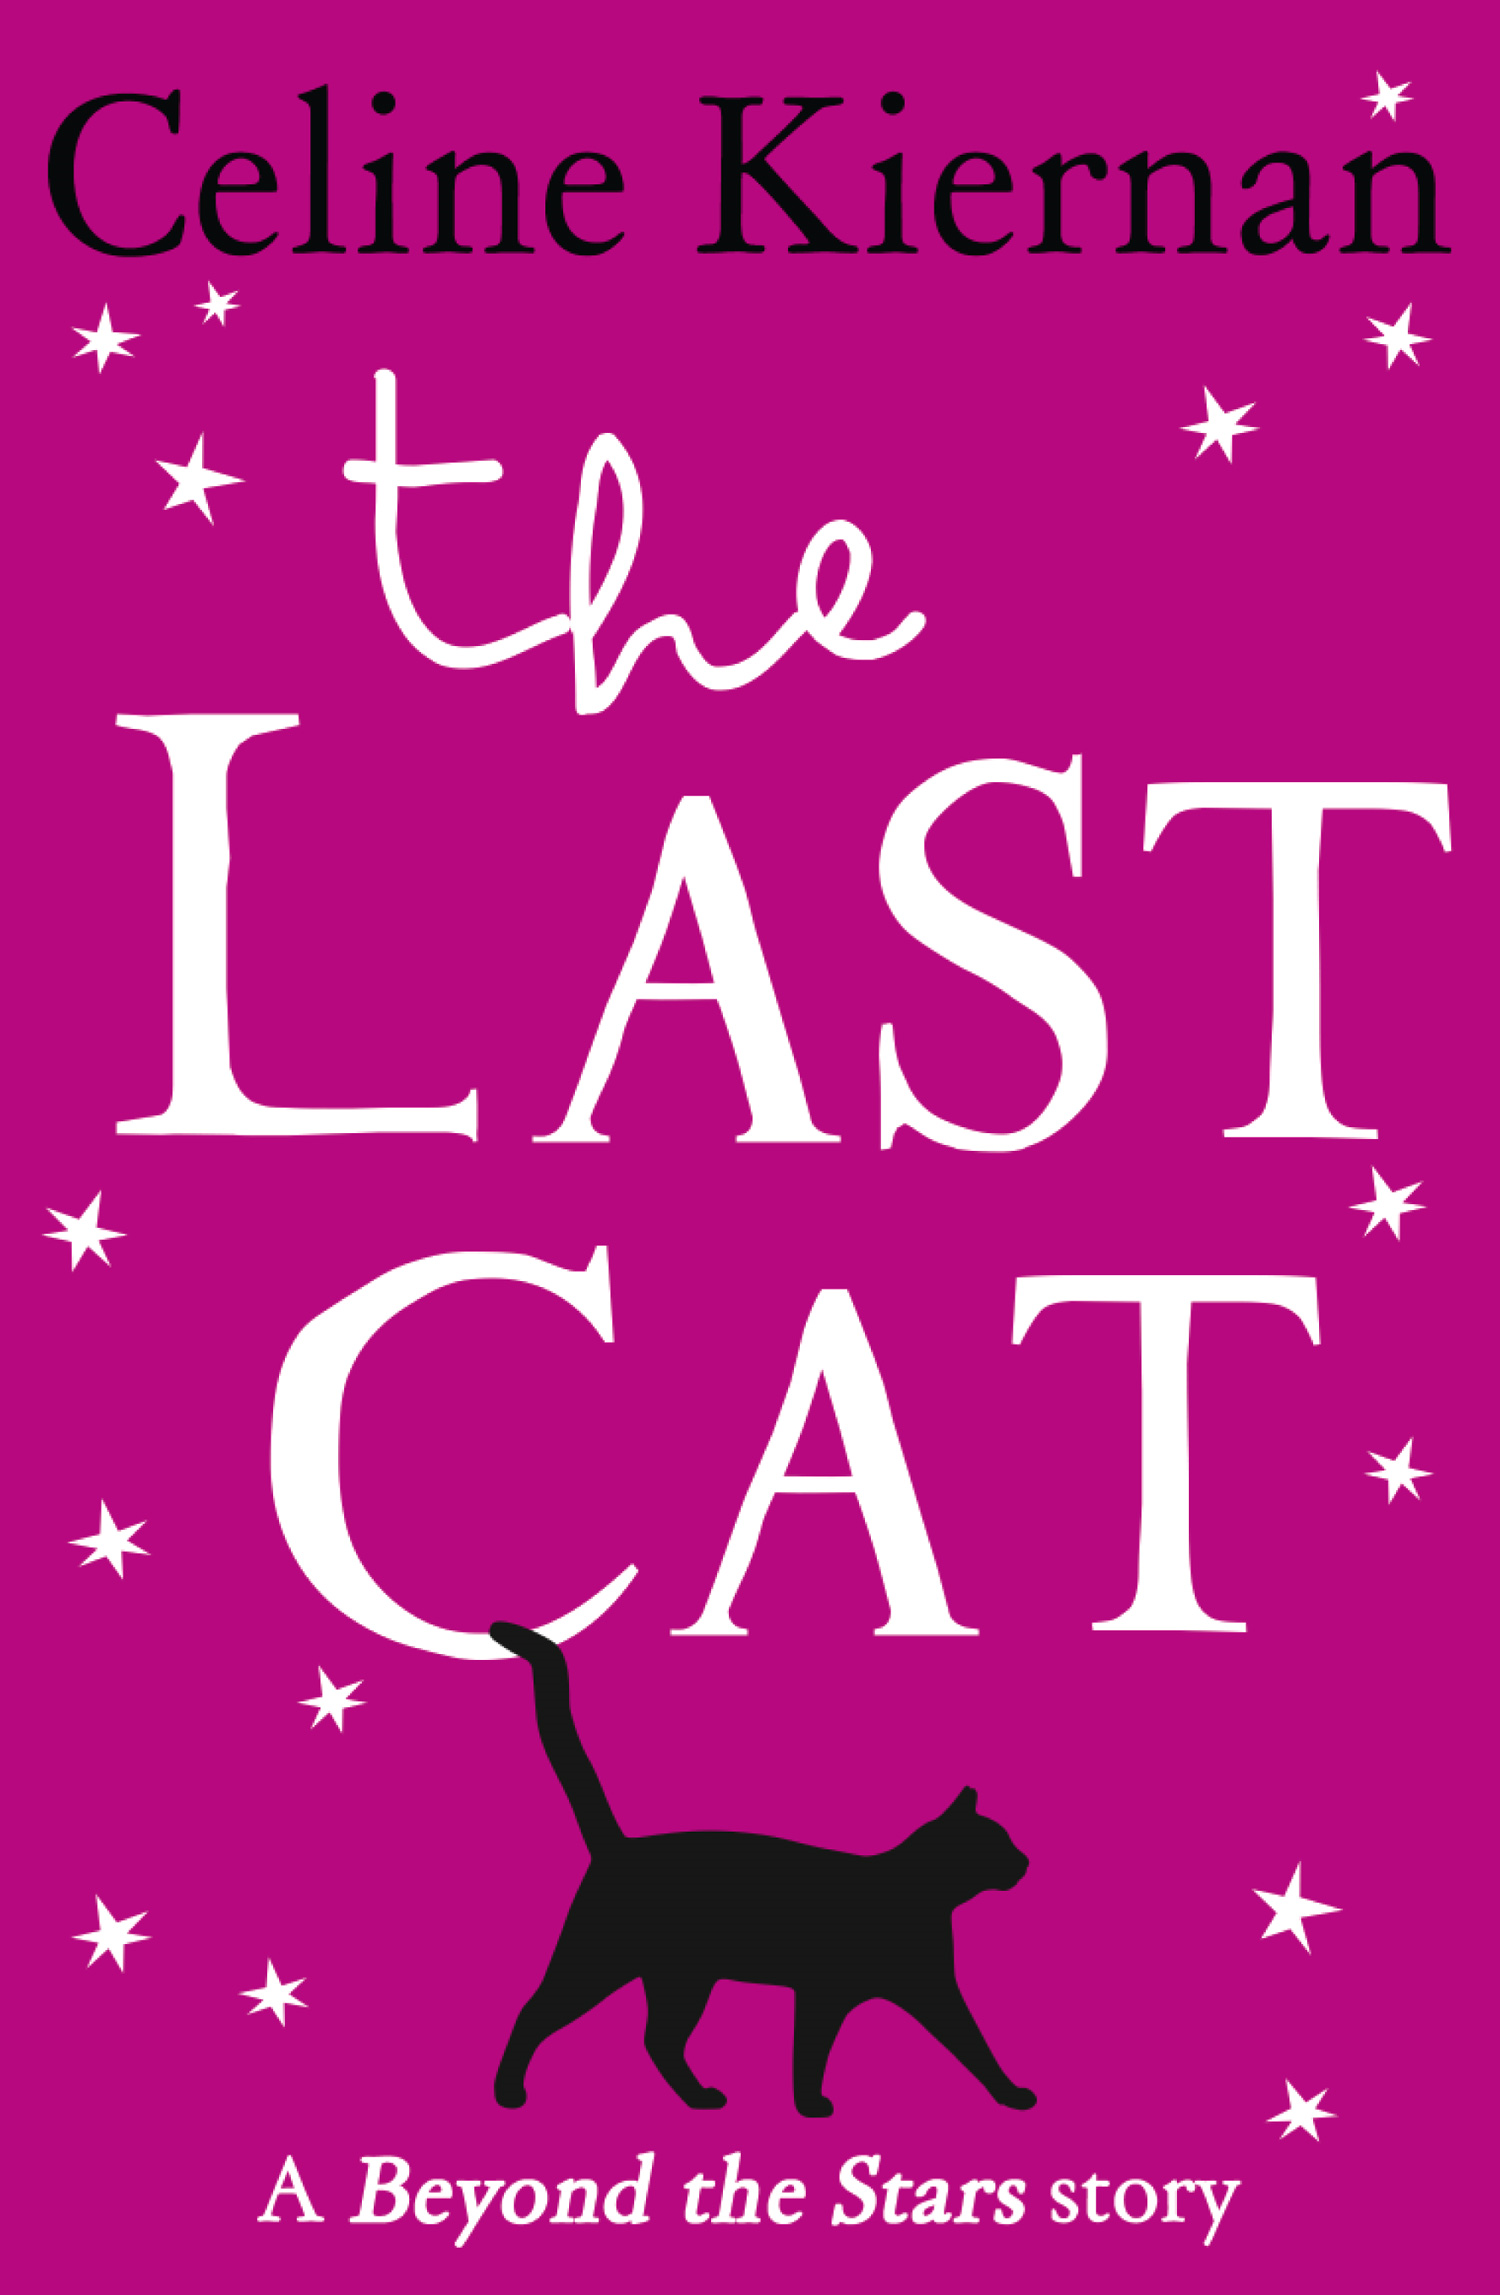 The Last Cat: Beyond the Stars